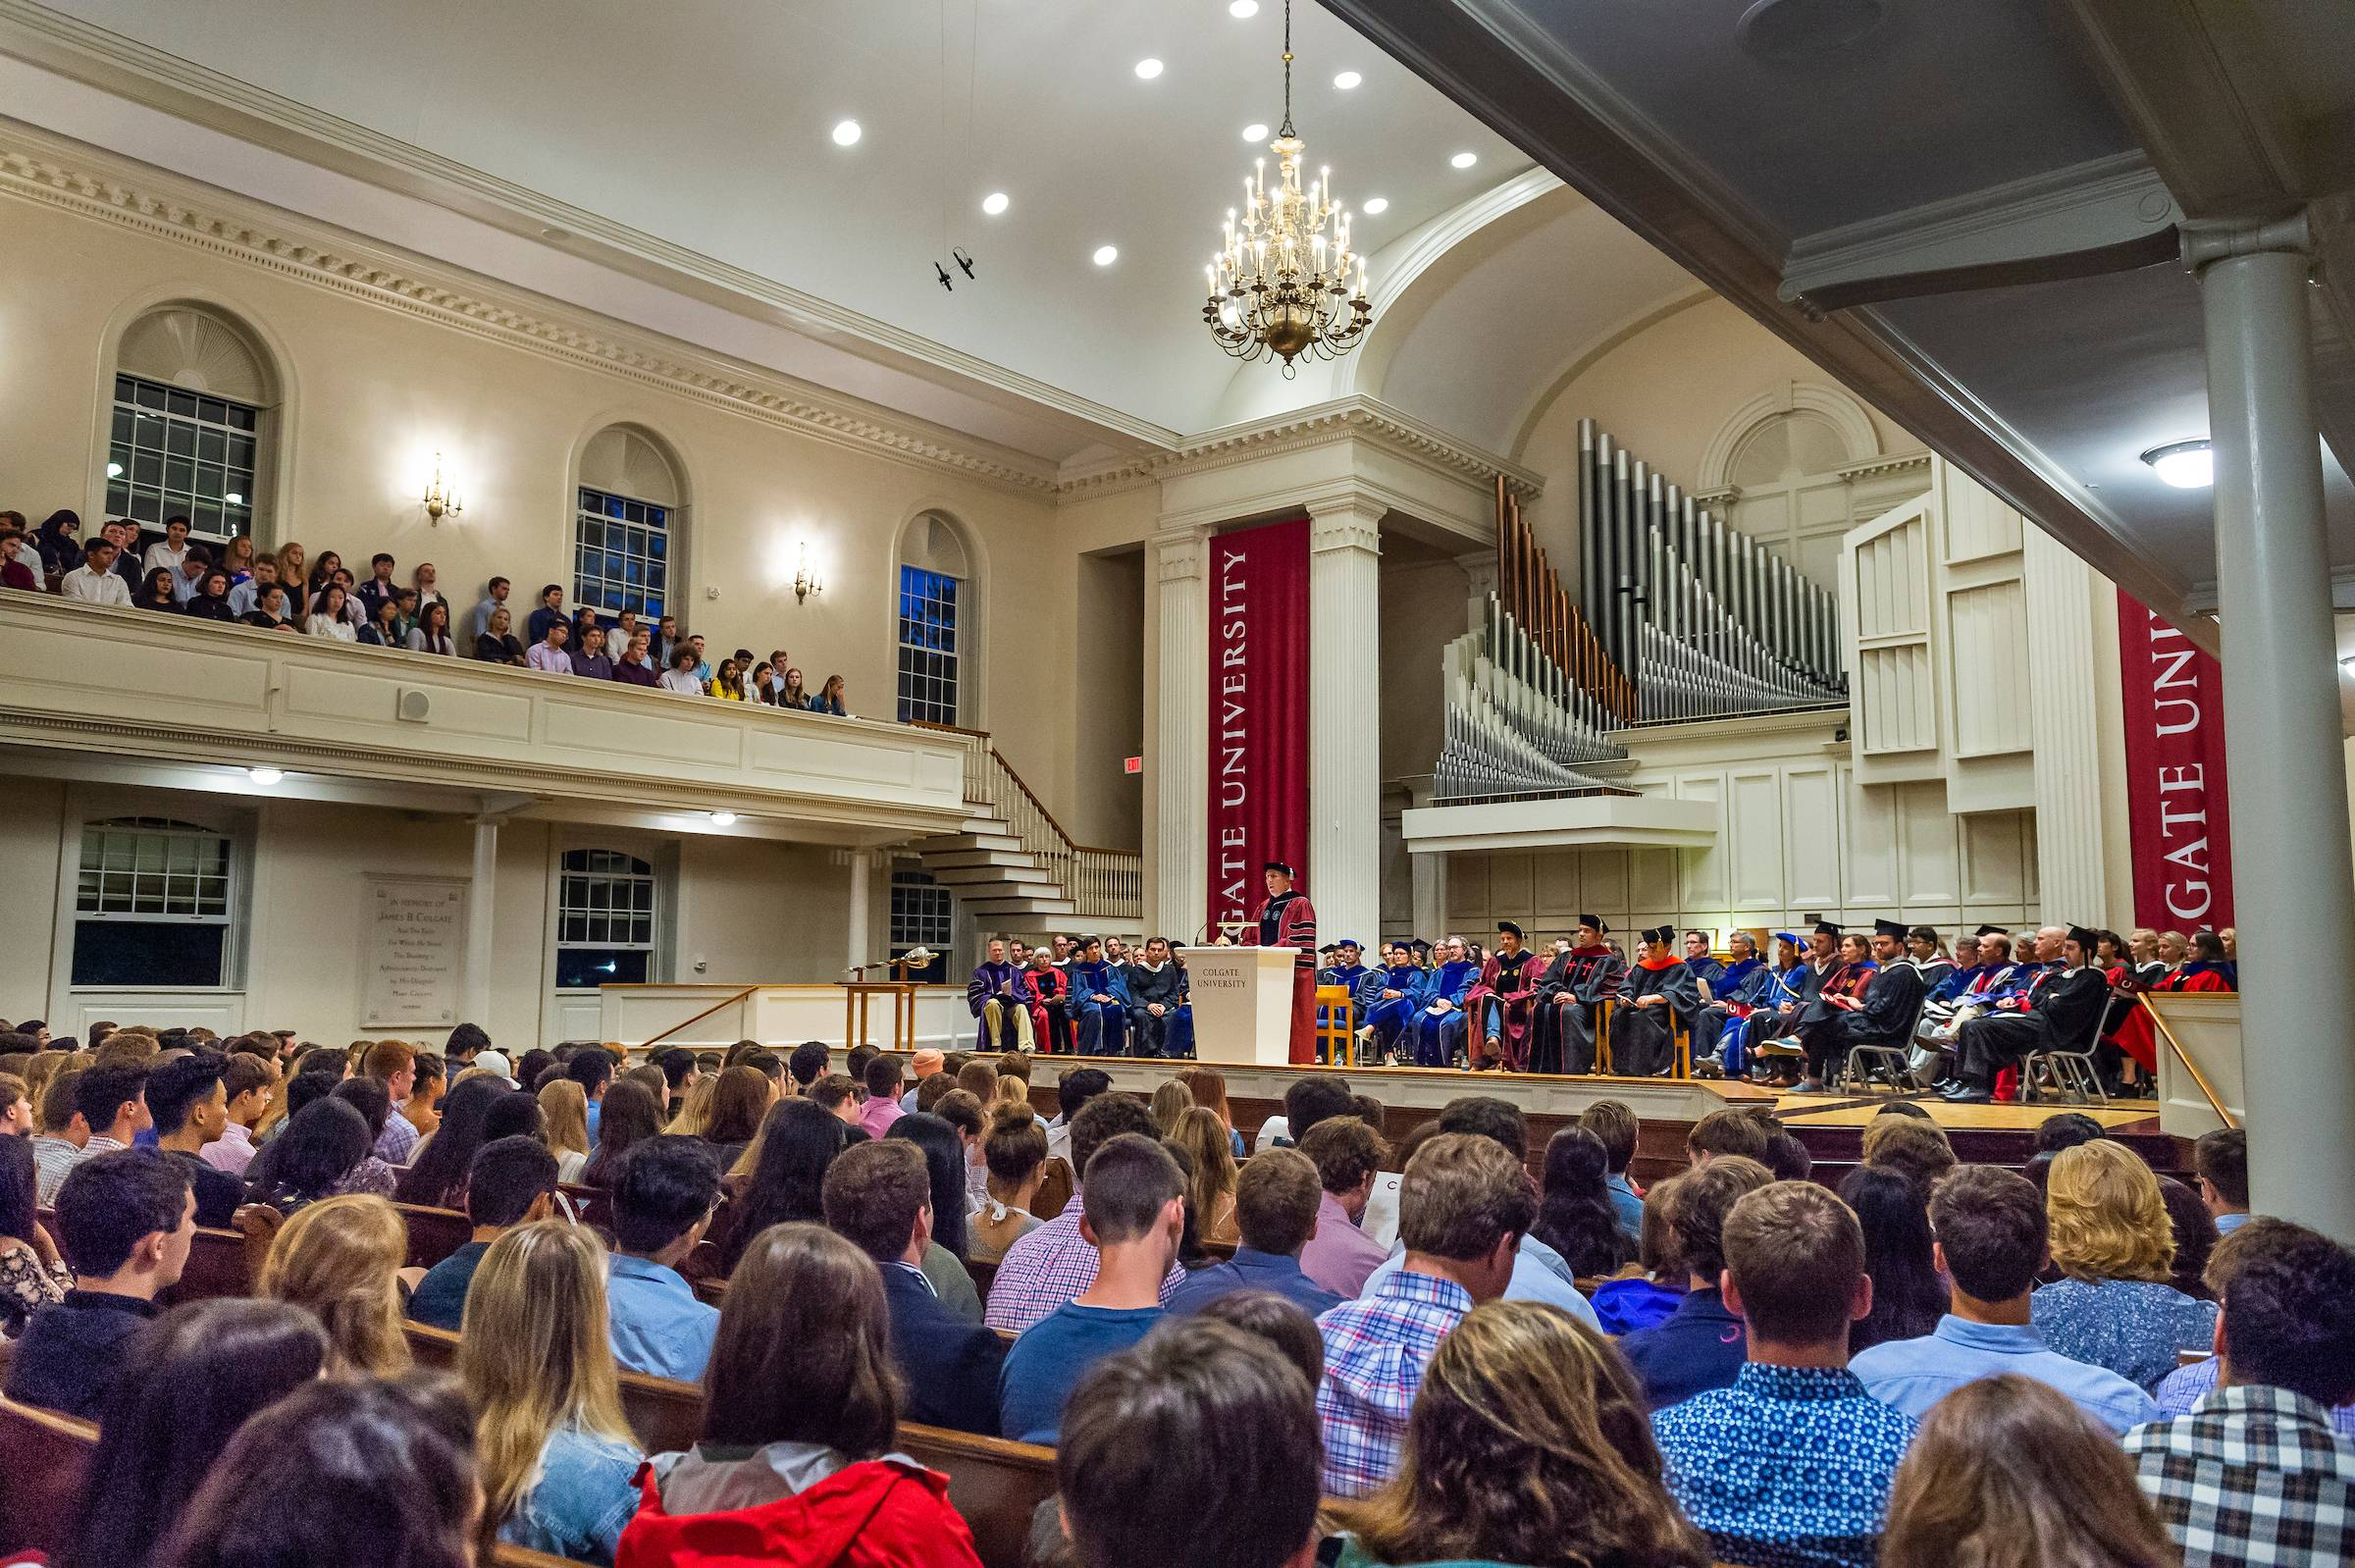 Students in the Class of 2023 gathered in the Colgate Memorial Chapel for Convocation Wednesday, August 28, 2019.